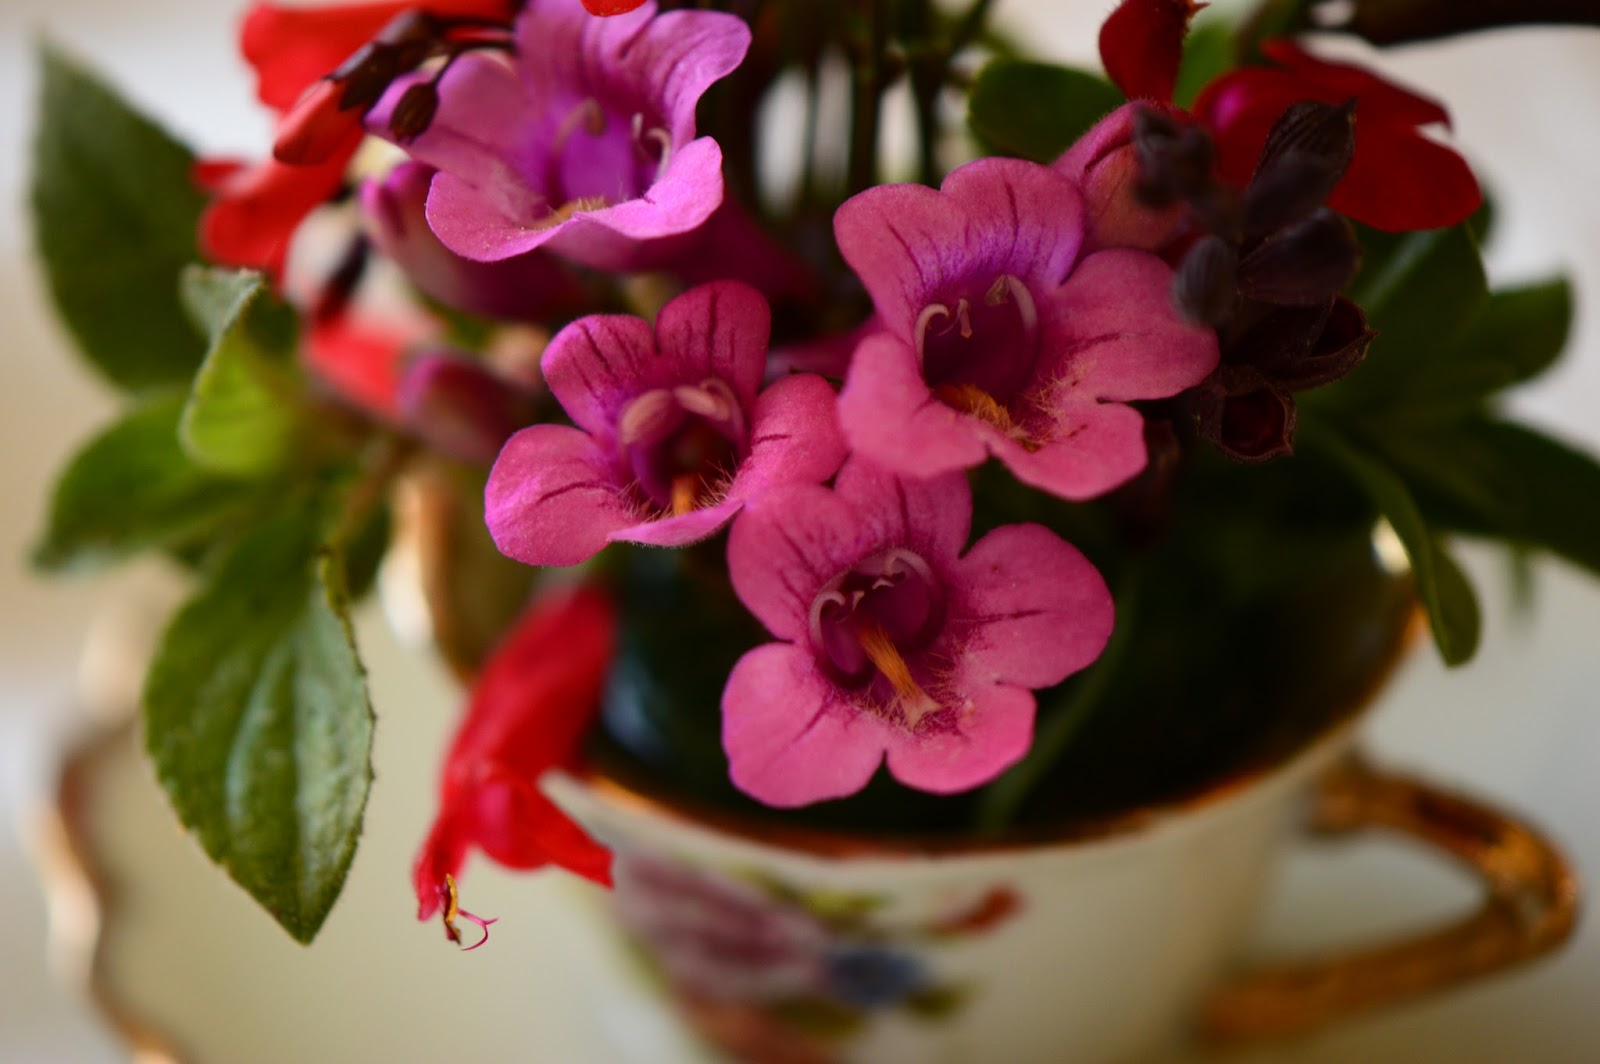 Monday Vase meme, Penstemon parryi